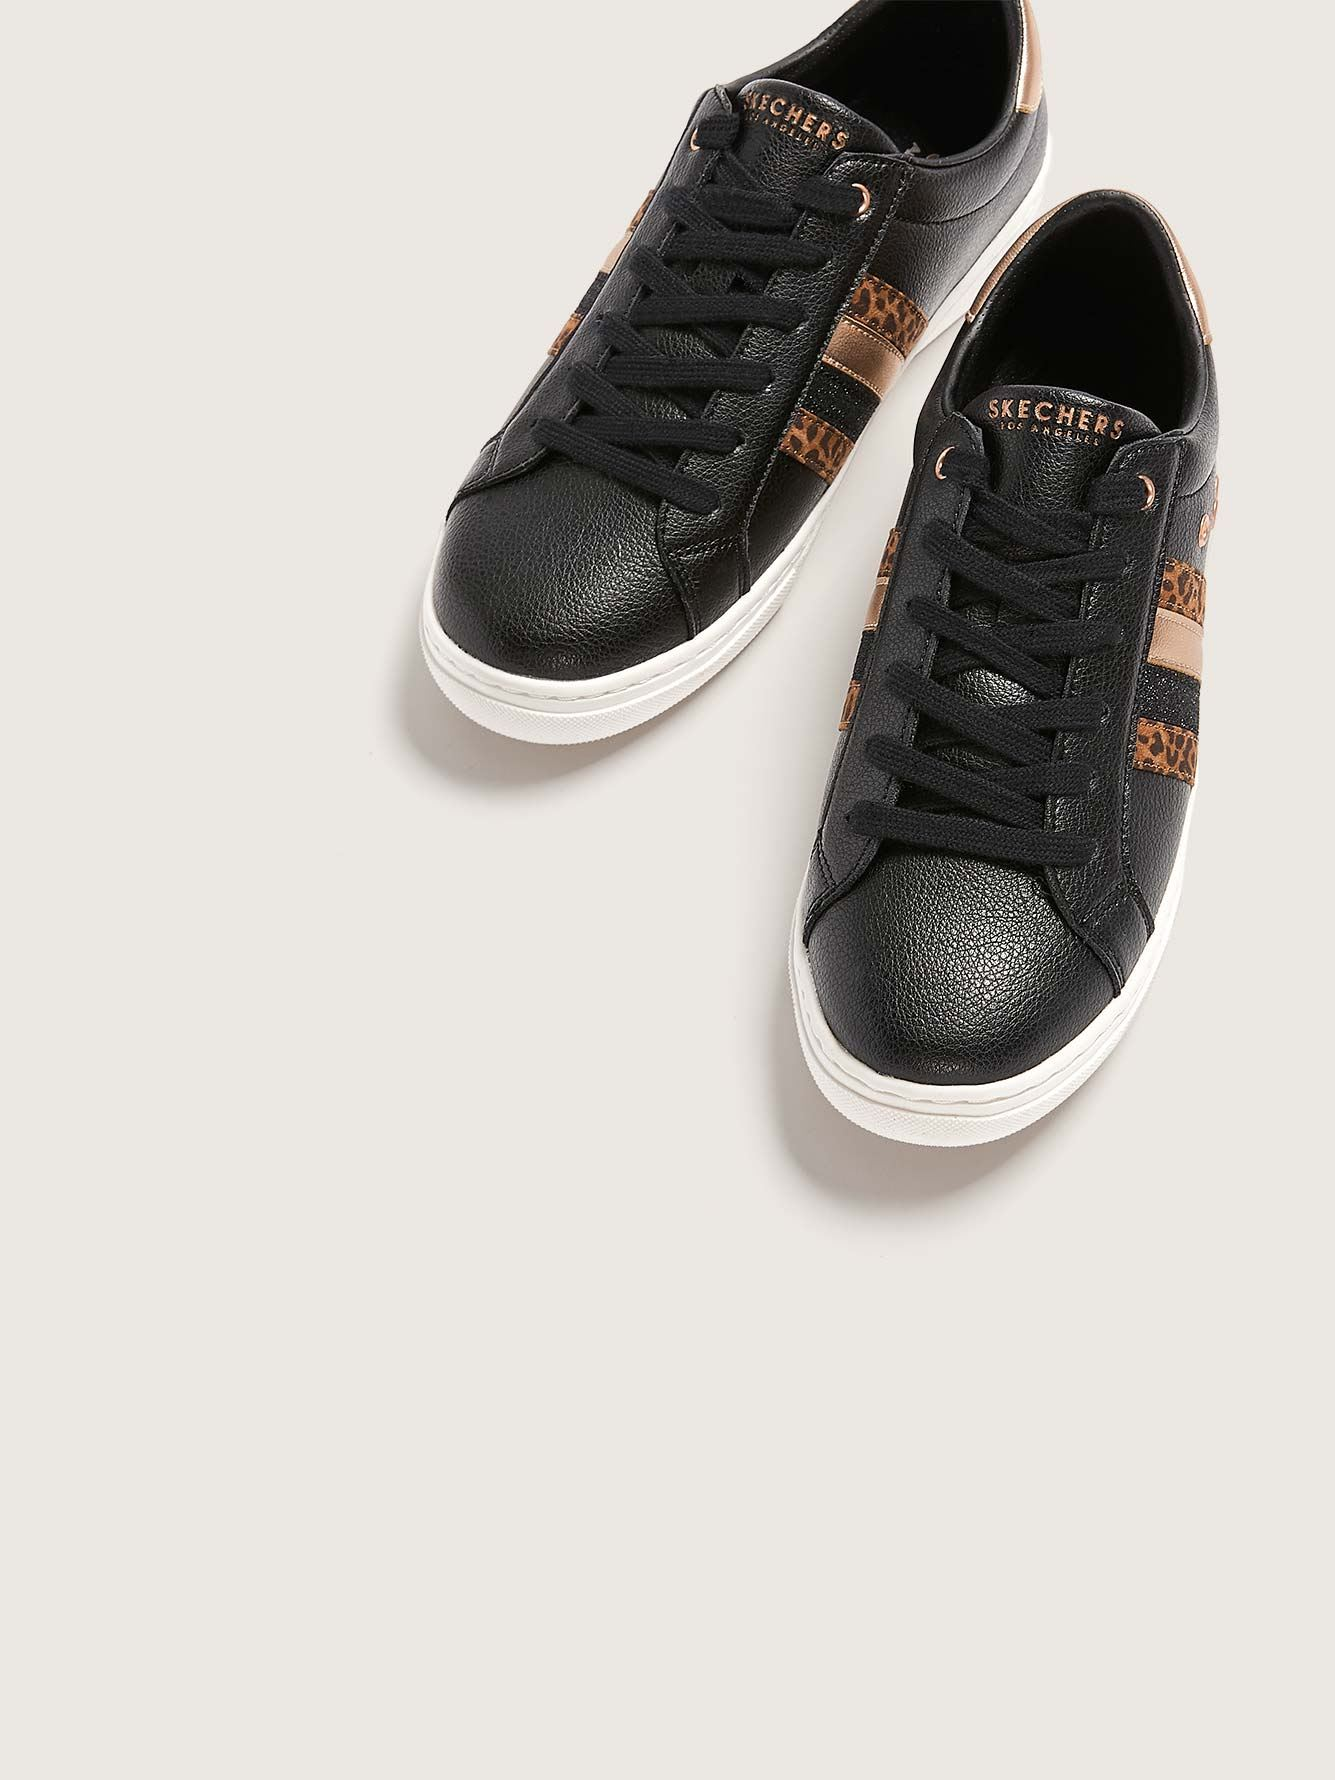 Wide Width Leather Sneakers - Skechers